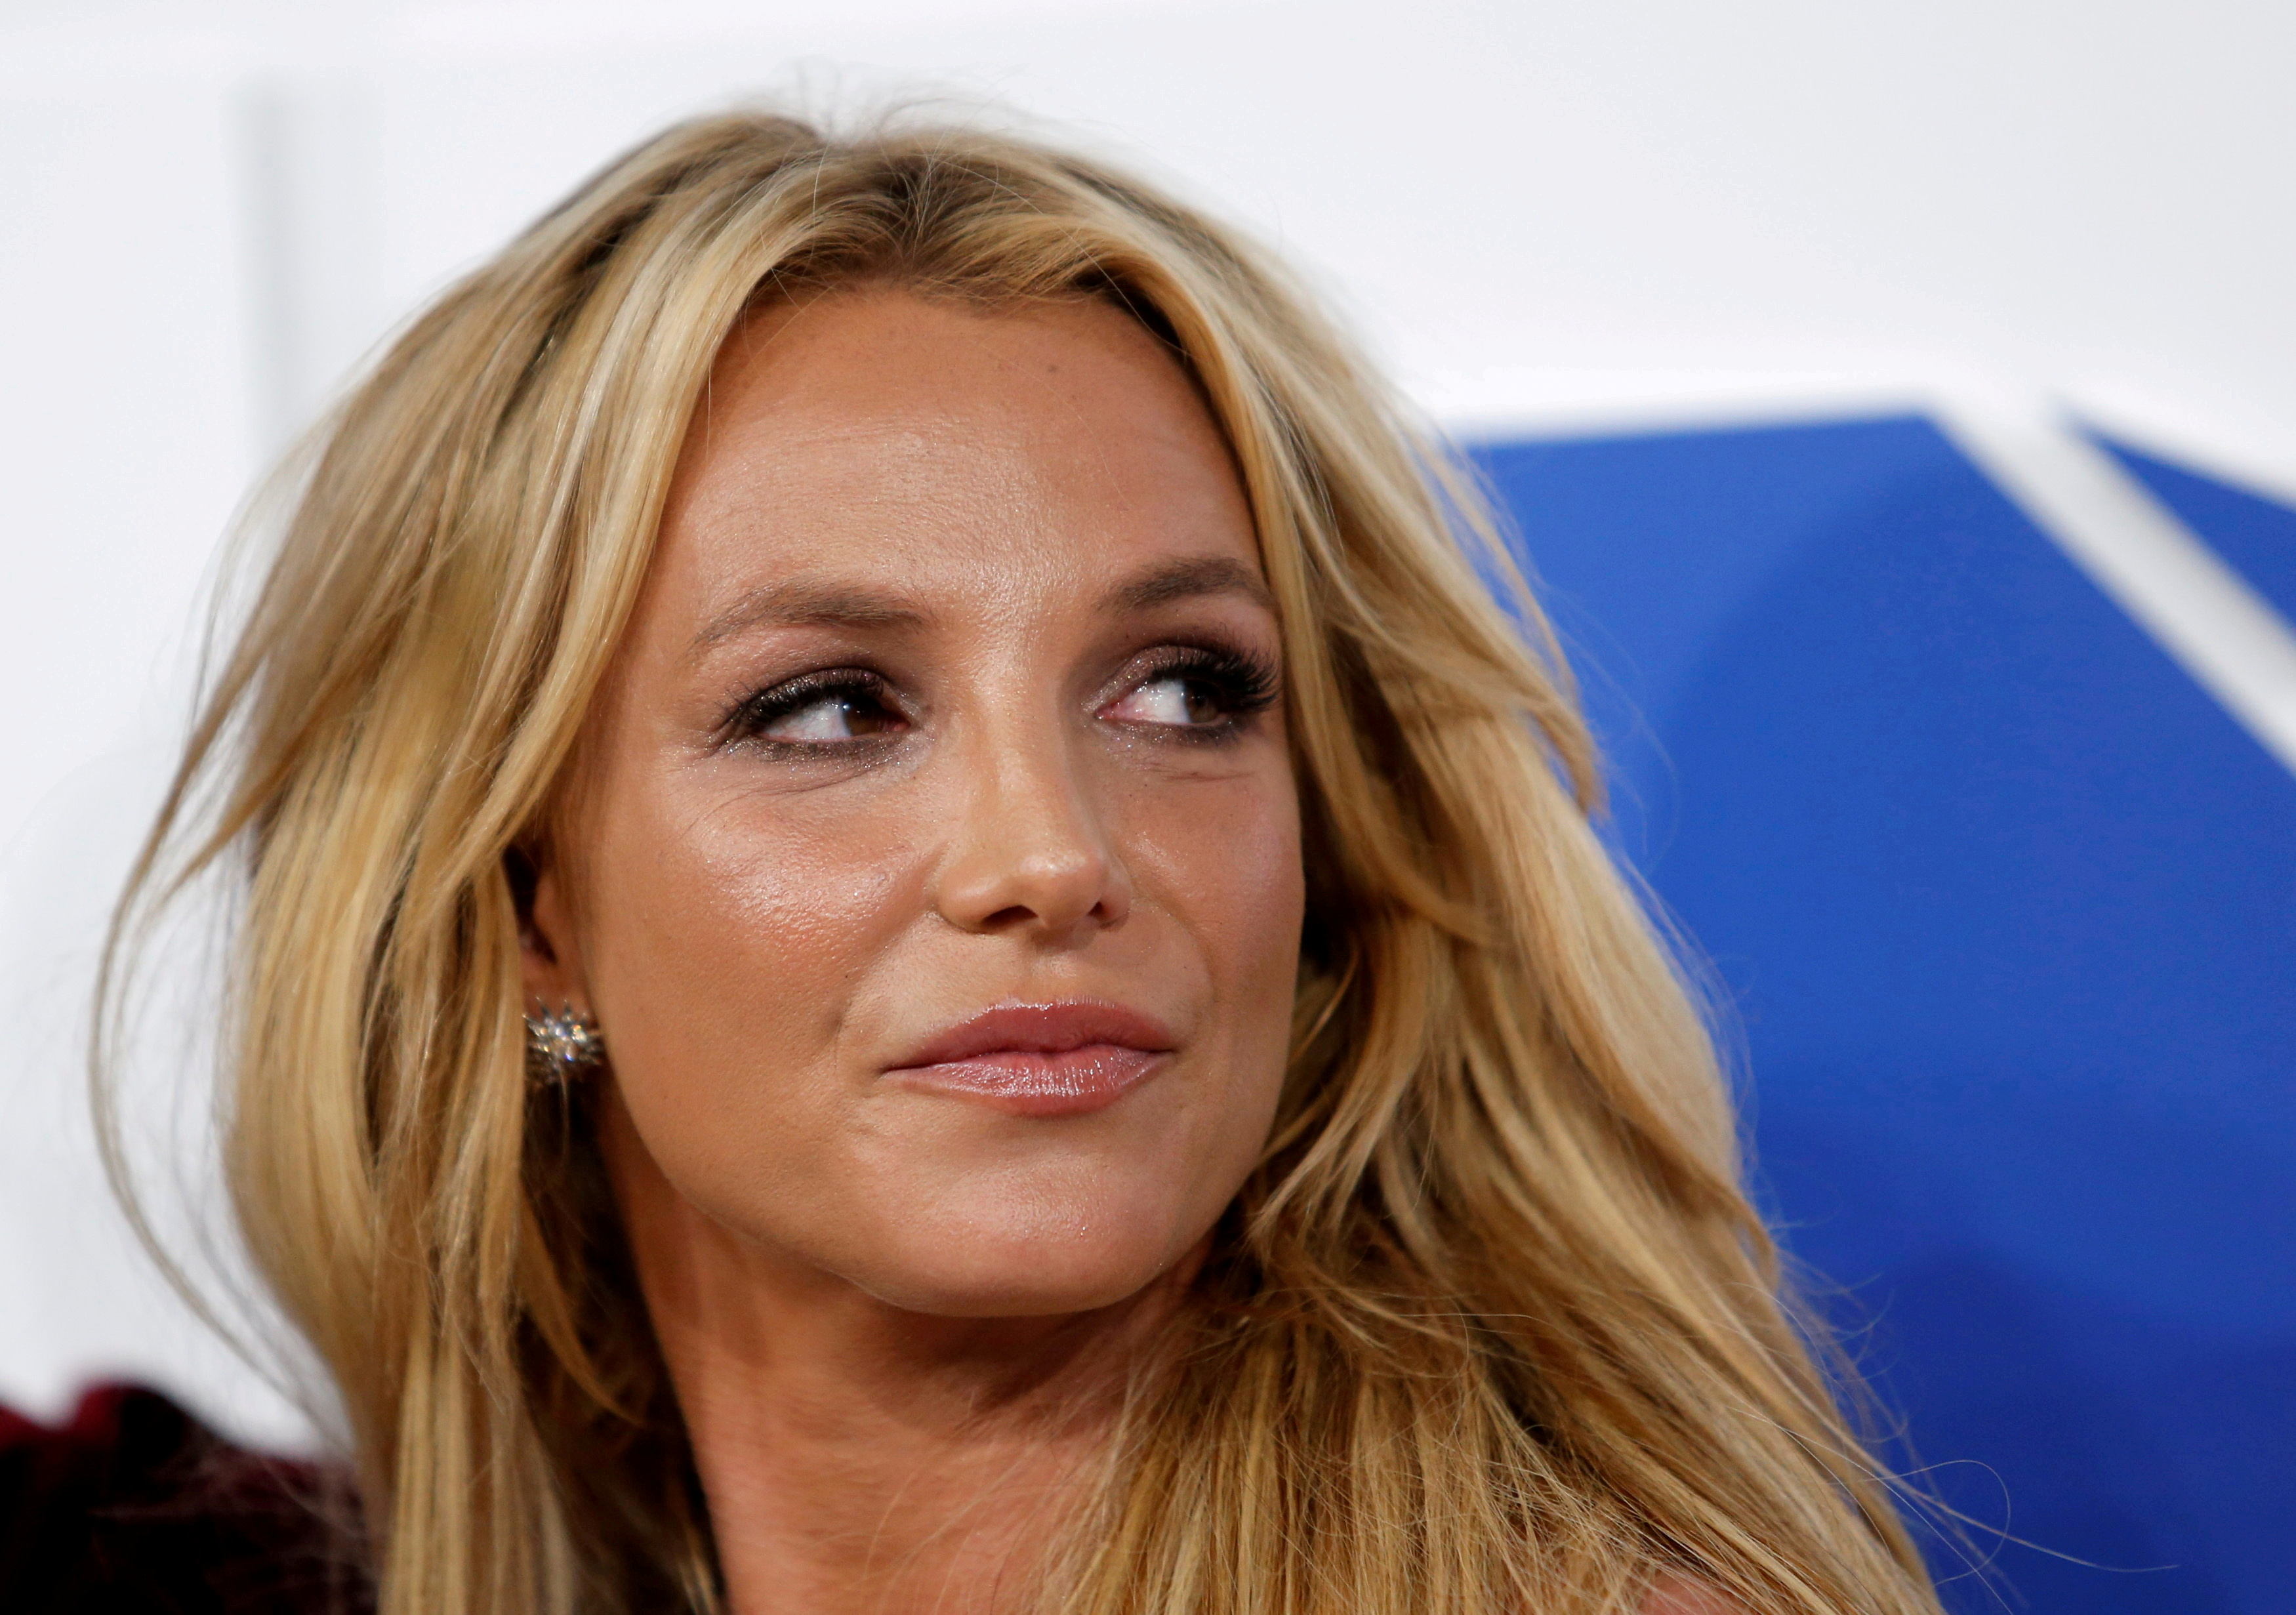 File photo: Britney Spears arrives at the 2016 MTV Video Music Awards in New York.  REUTERS/Eduardo Munoz